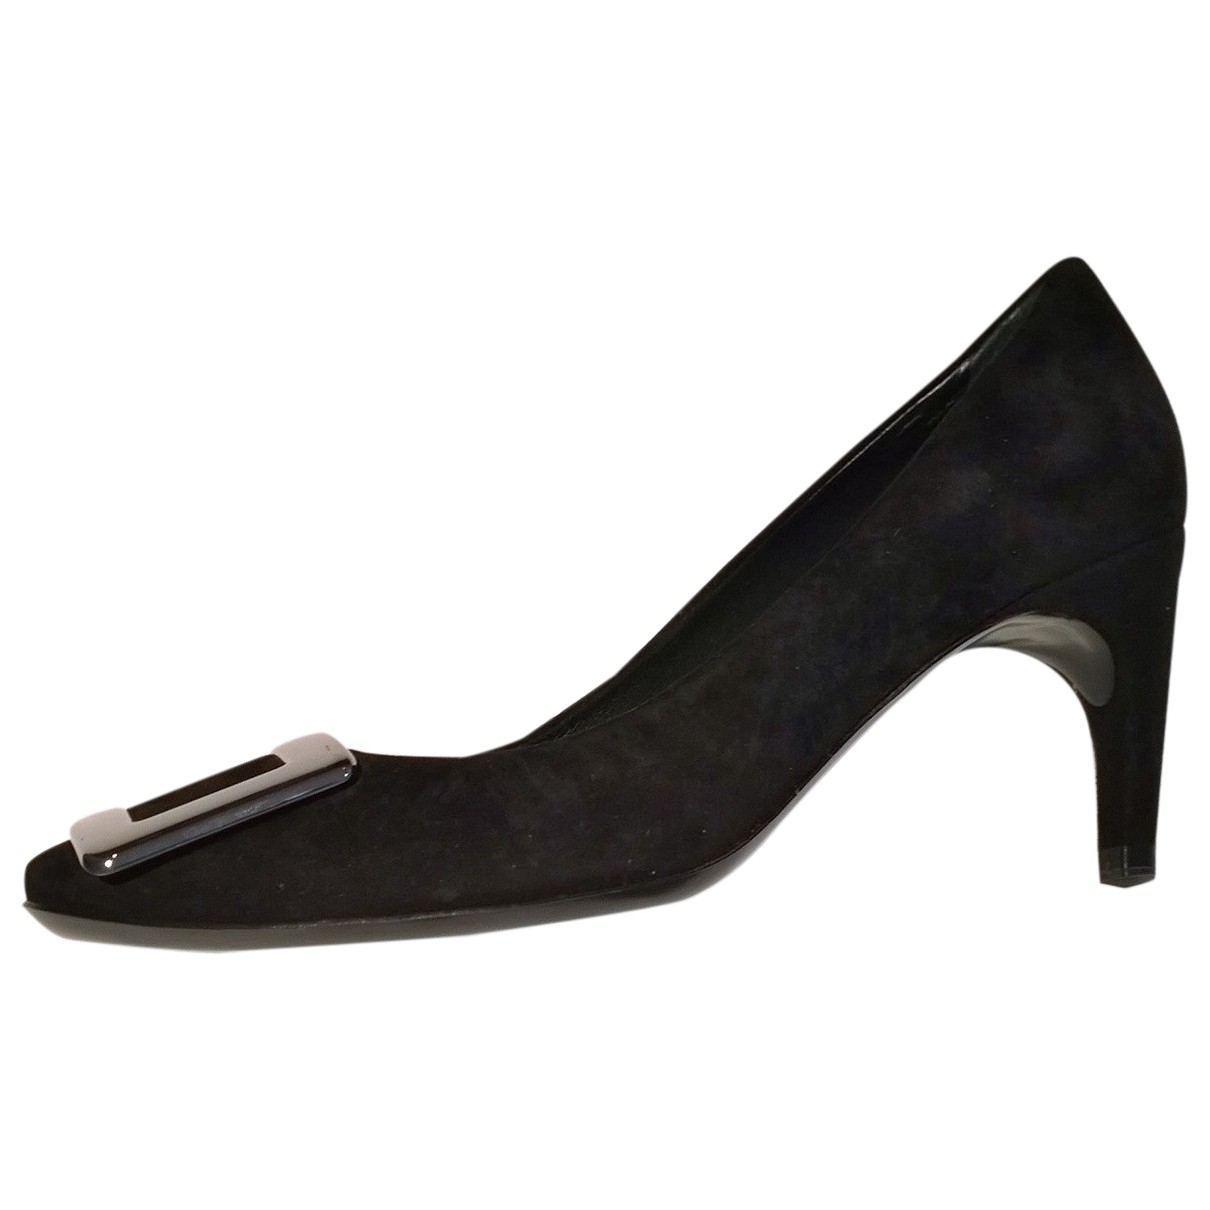 Roger Vivier Belle de Nuit Black Suede Heels for Women 35 IT